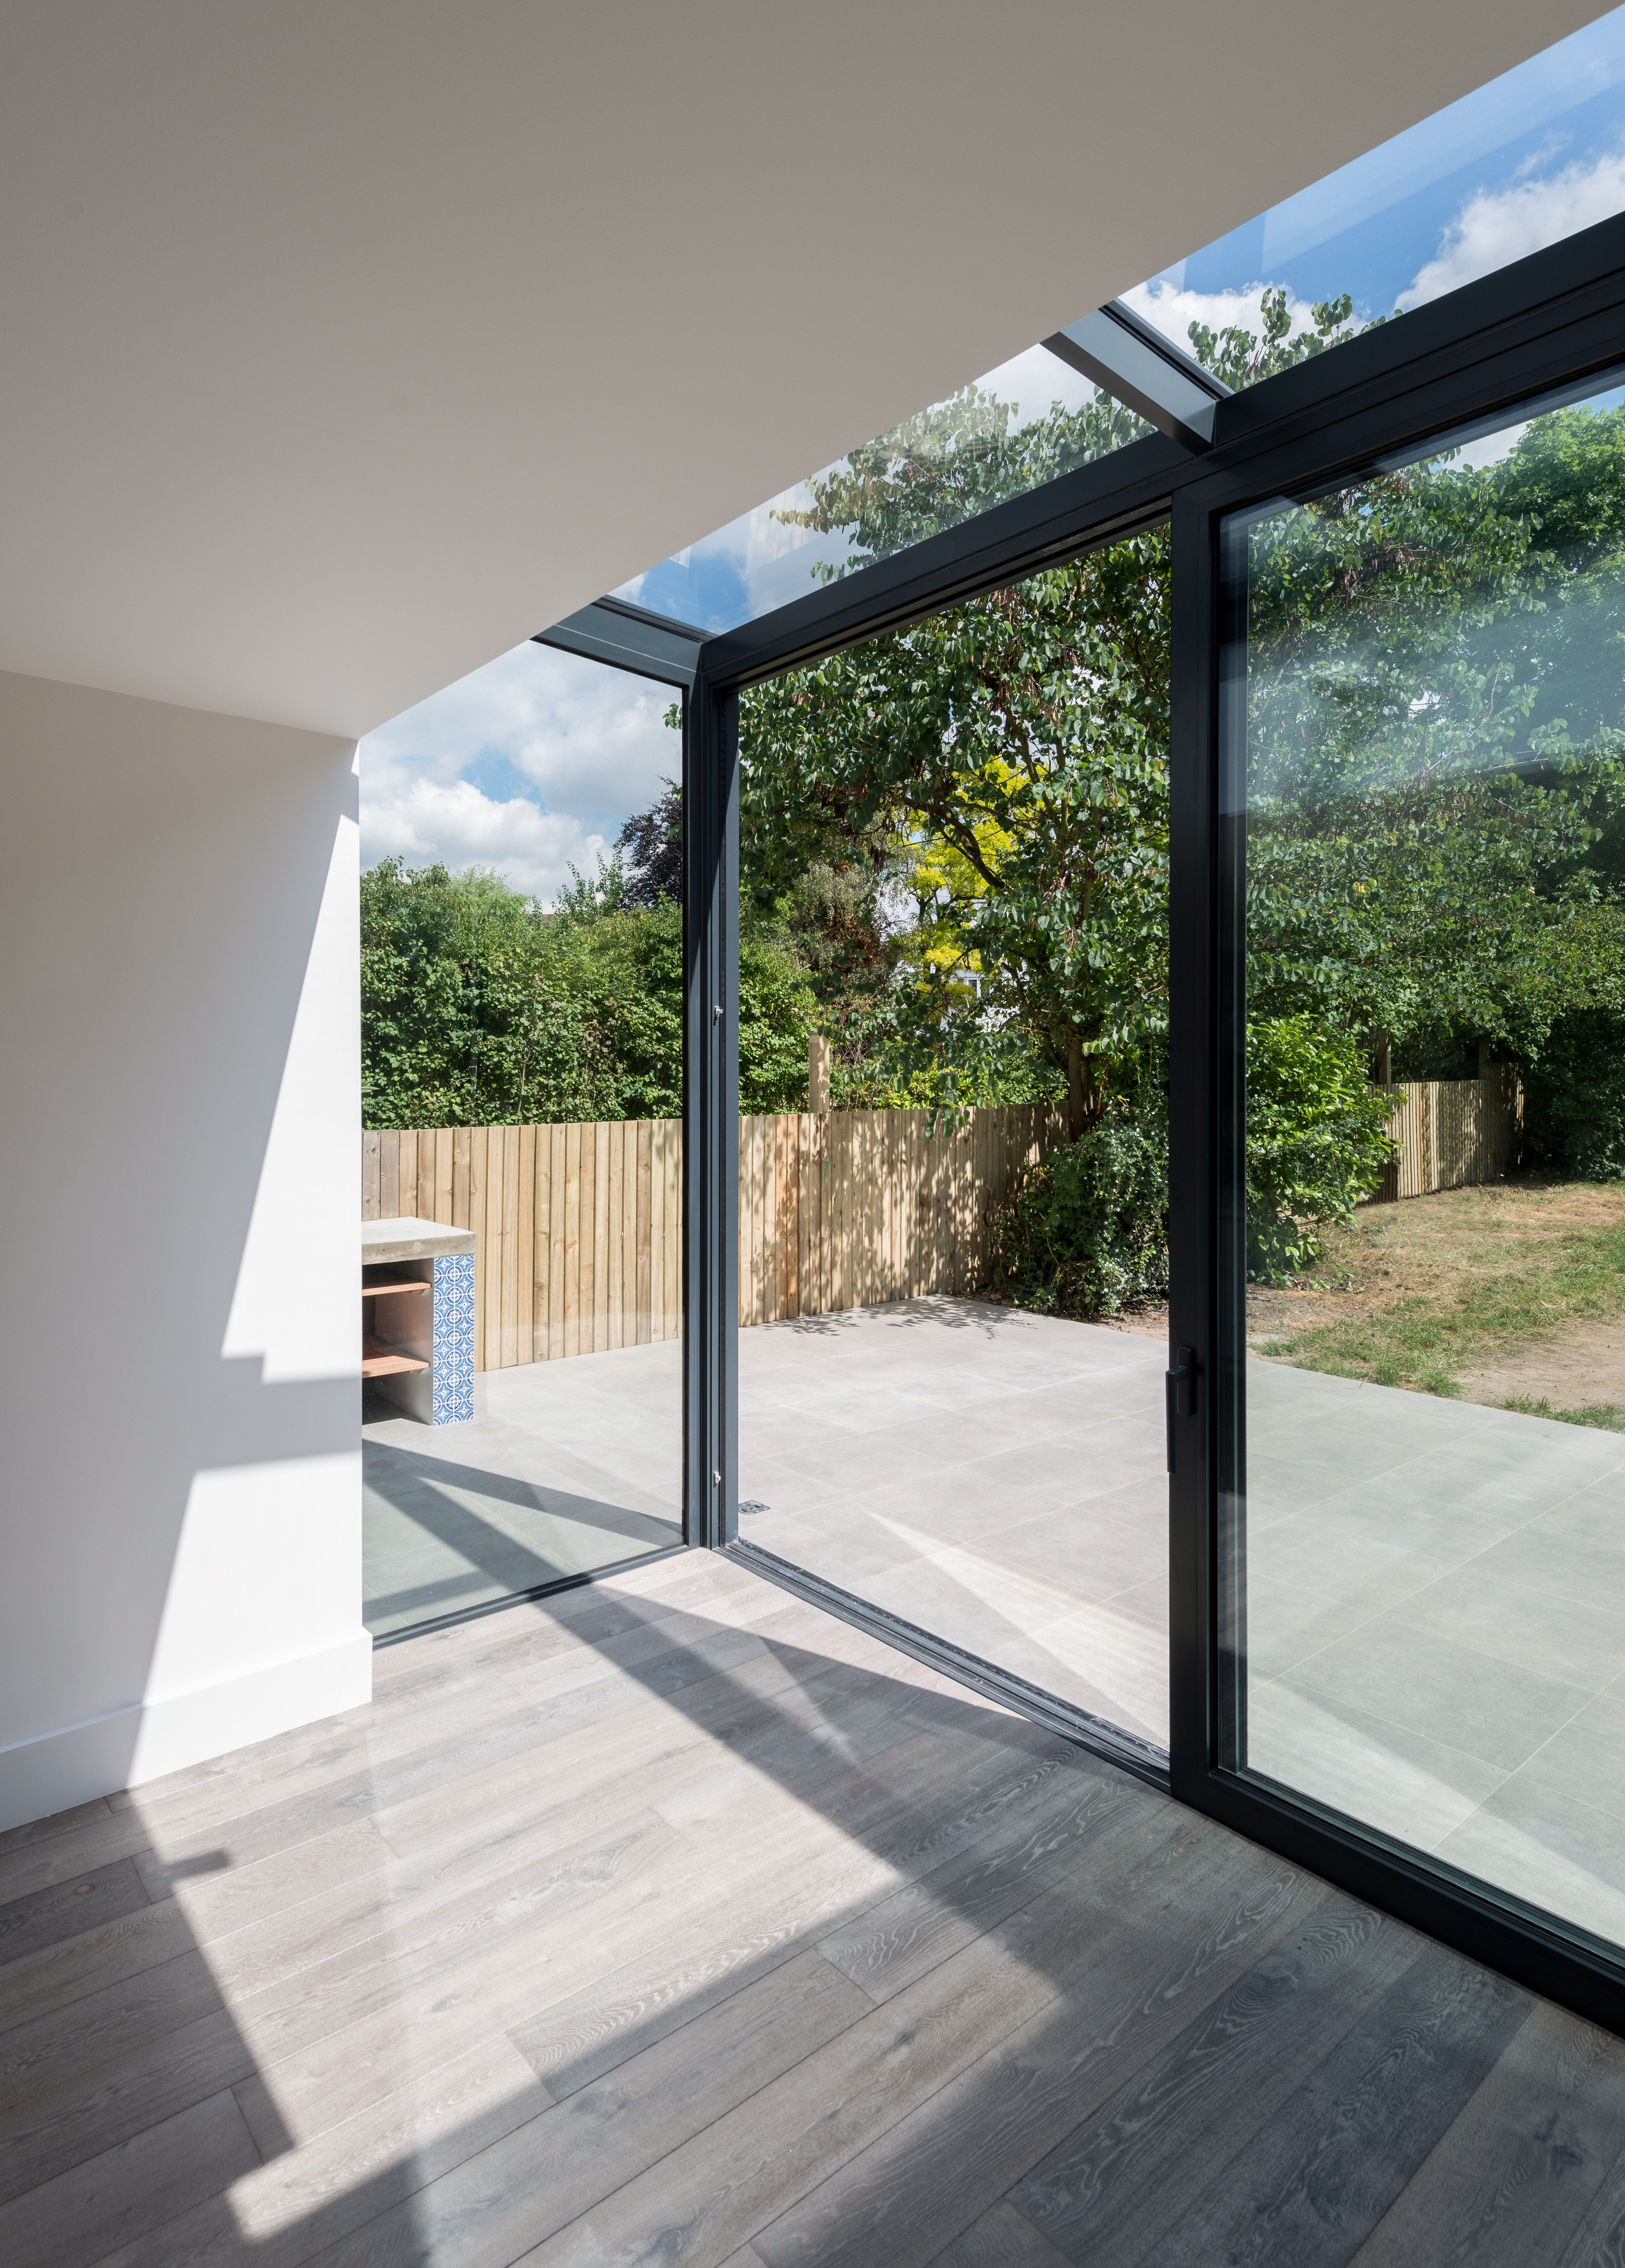 Southern Windows contemporary kitchen extension Glazed roof